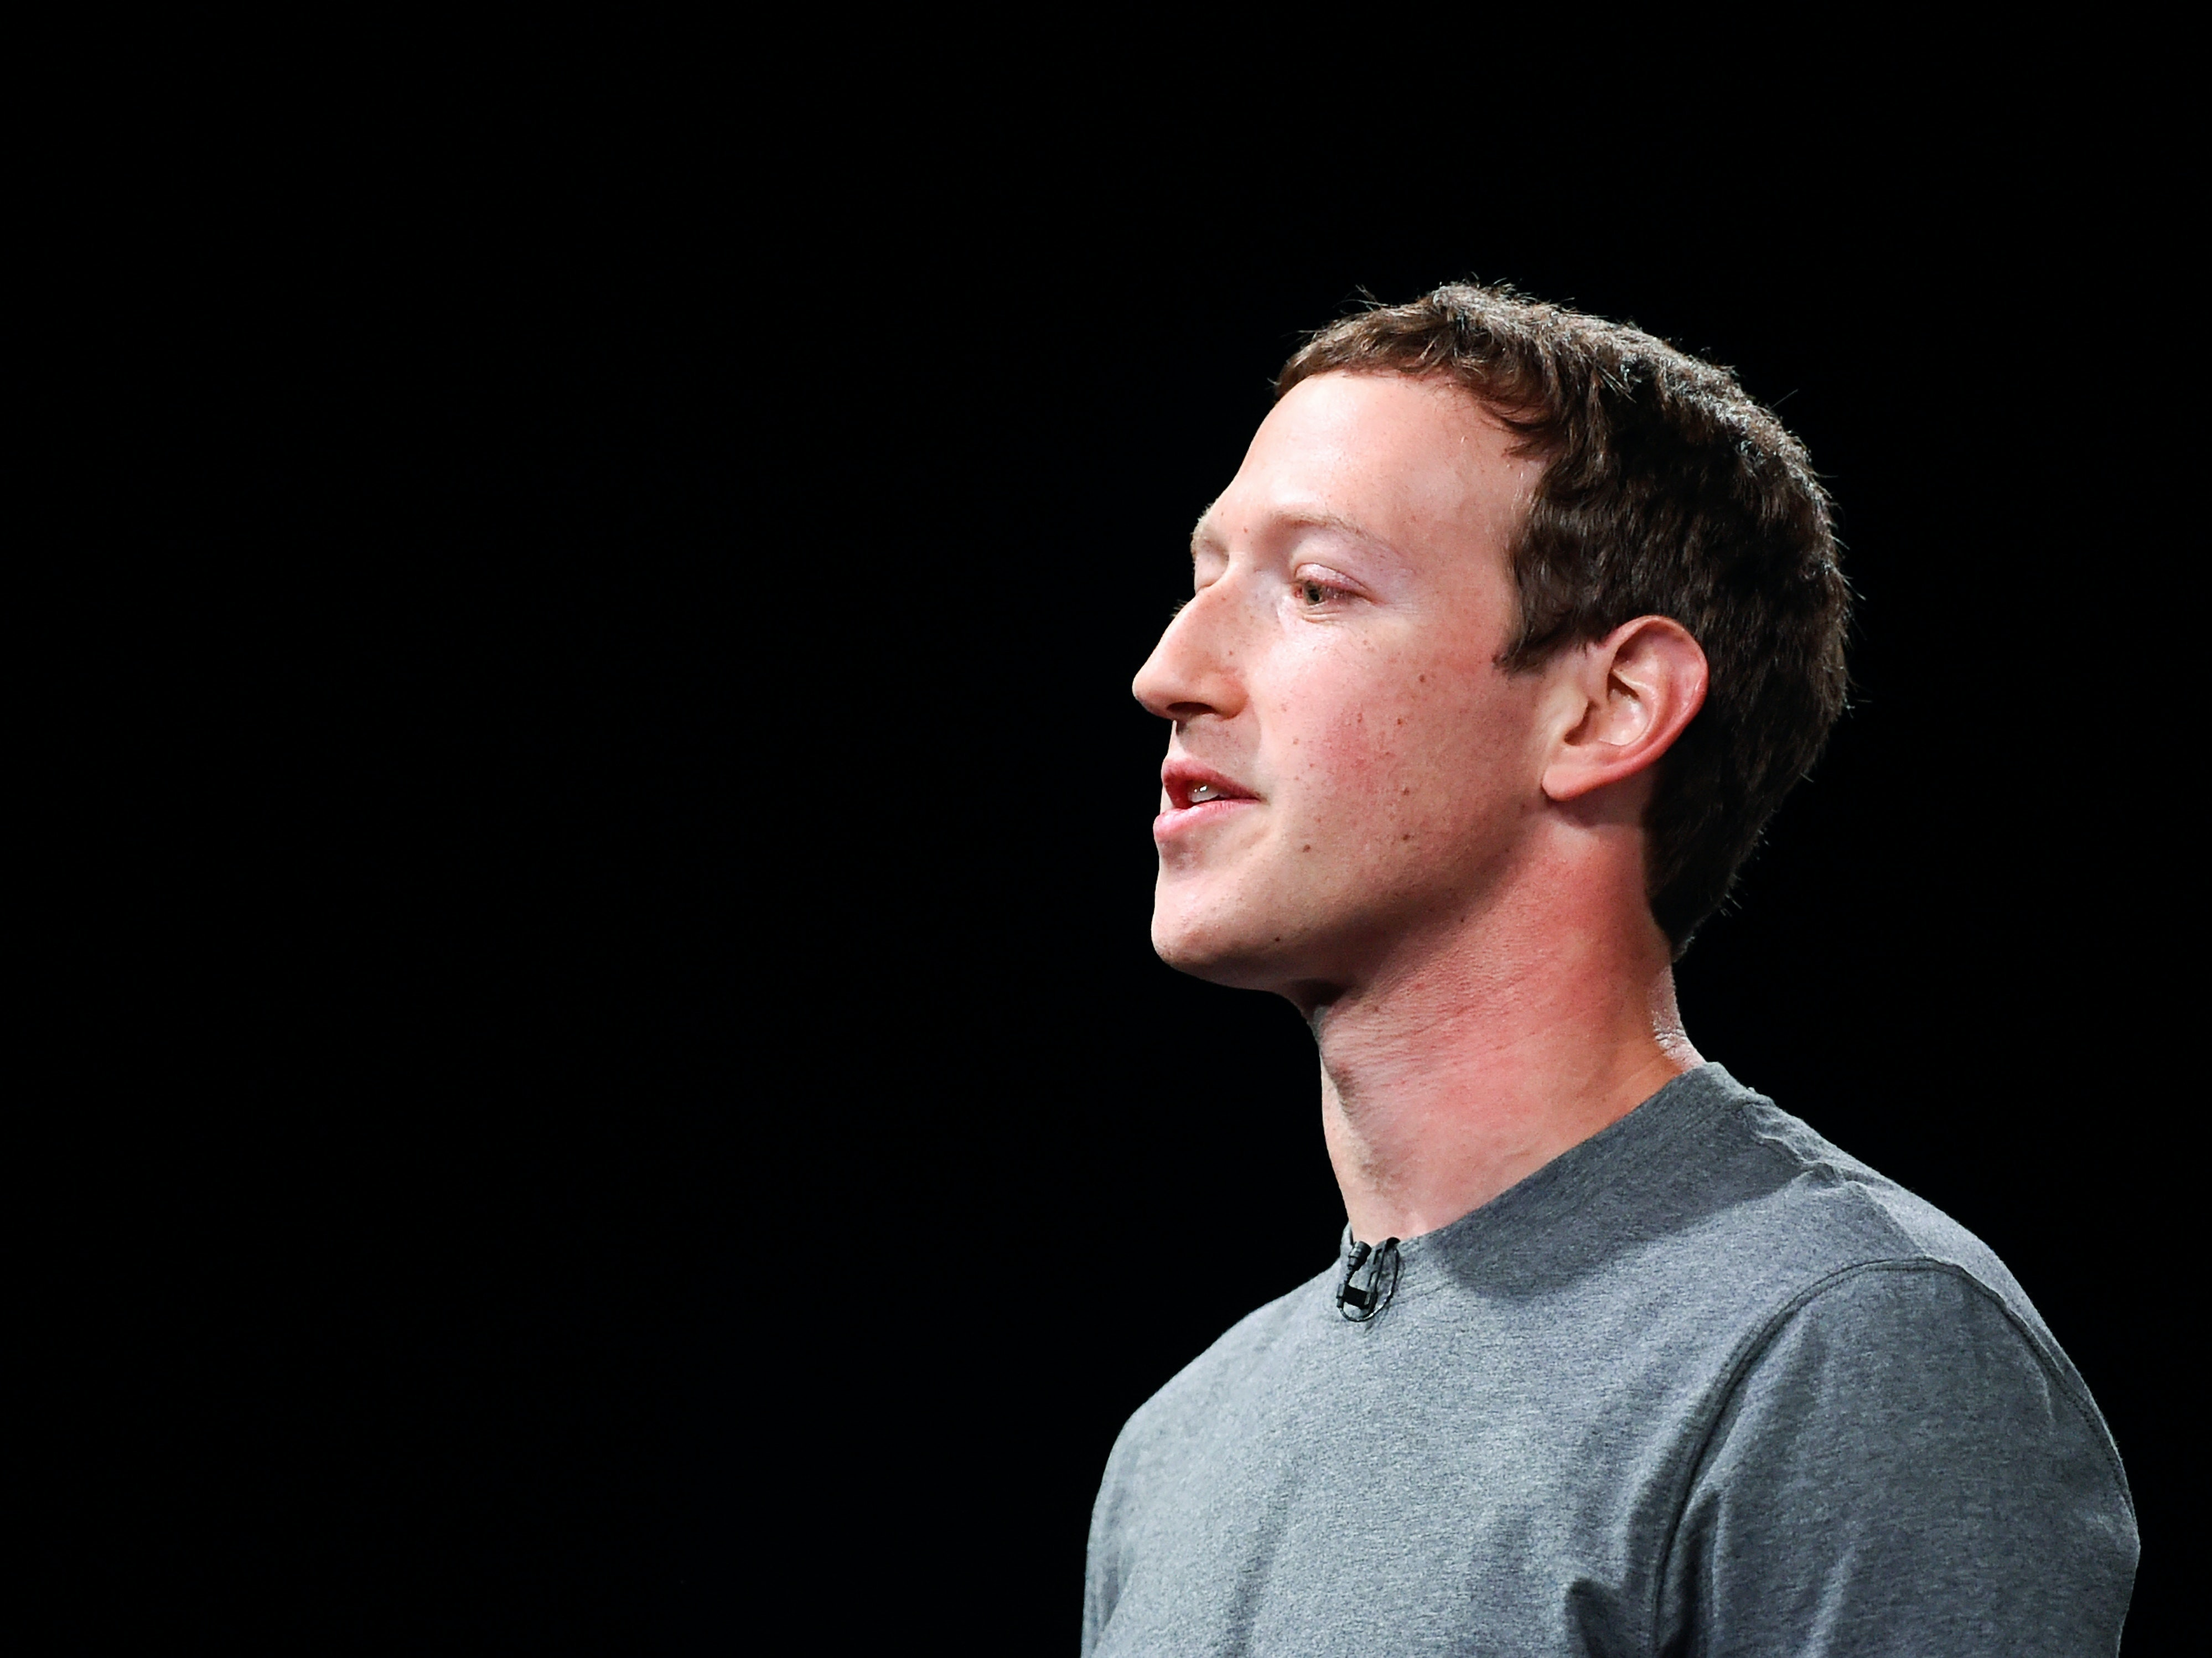 Mark Zuckerberg: Humans Living Past 100 'Will Be Pretty Normal'